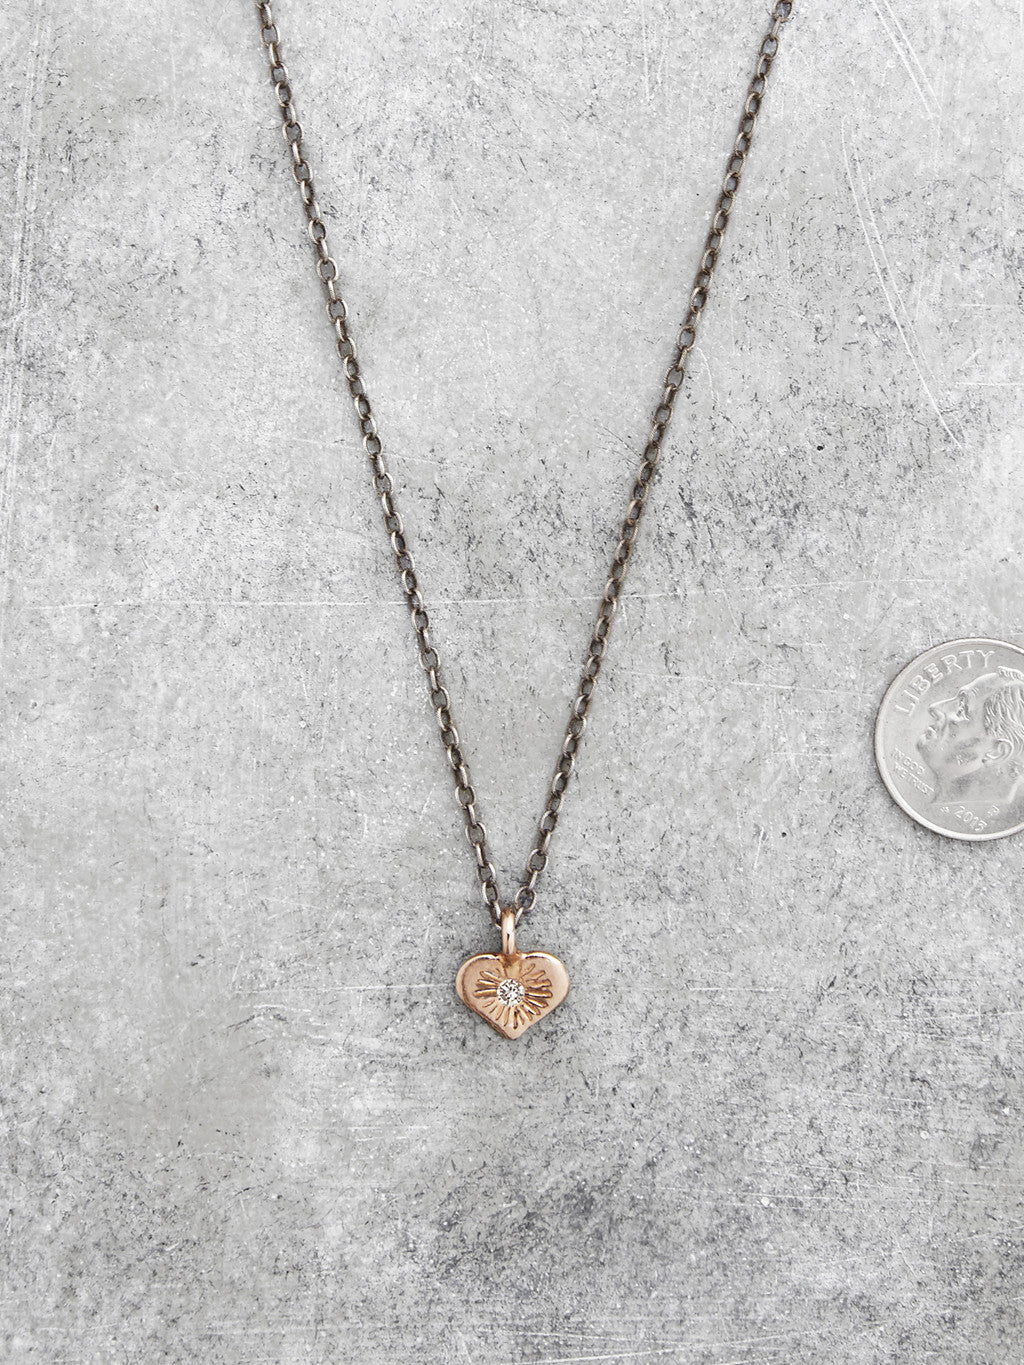 Open Hearted Diamond Necklace - Rose Gold - full view